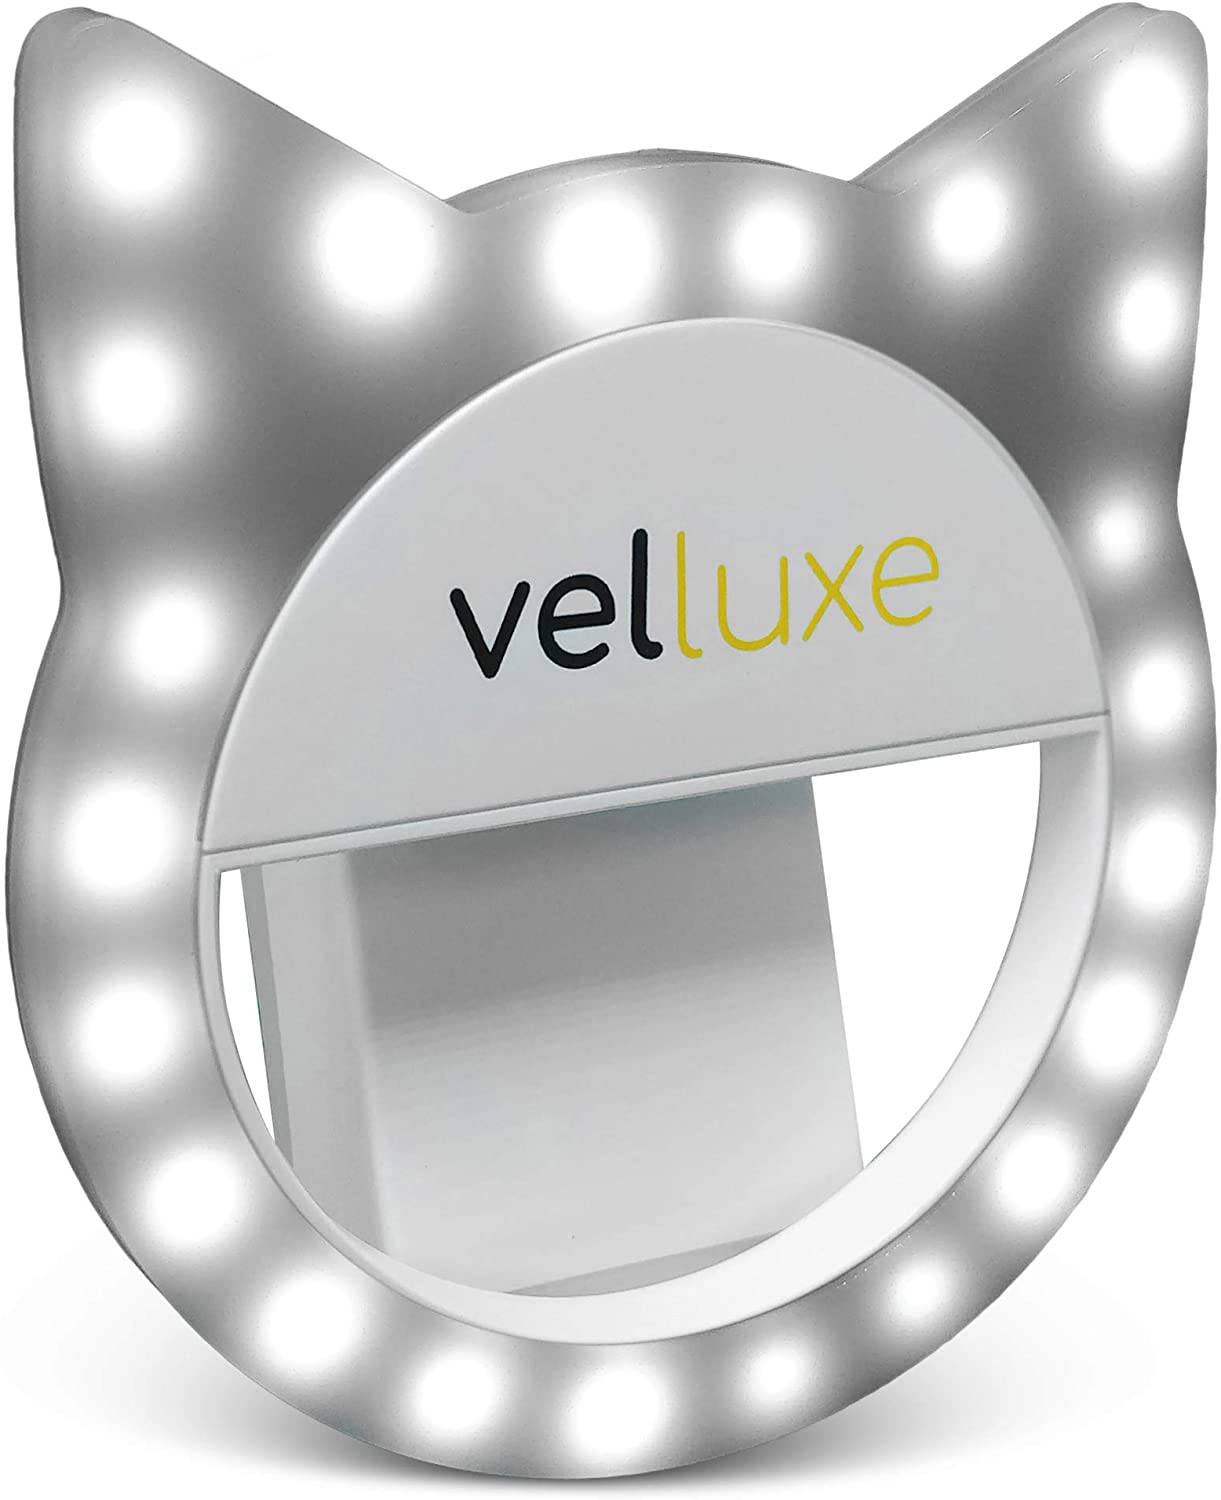 velluxe Selfie Ring Light - for iPhone/Android Smart Phone Photography, Clip On, 3 Different Brightness Levels